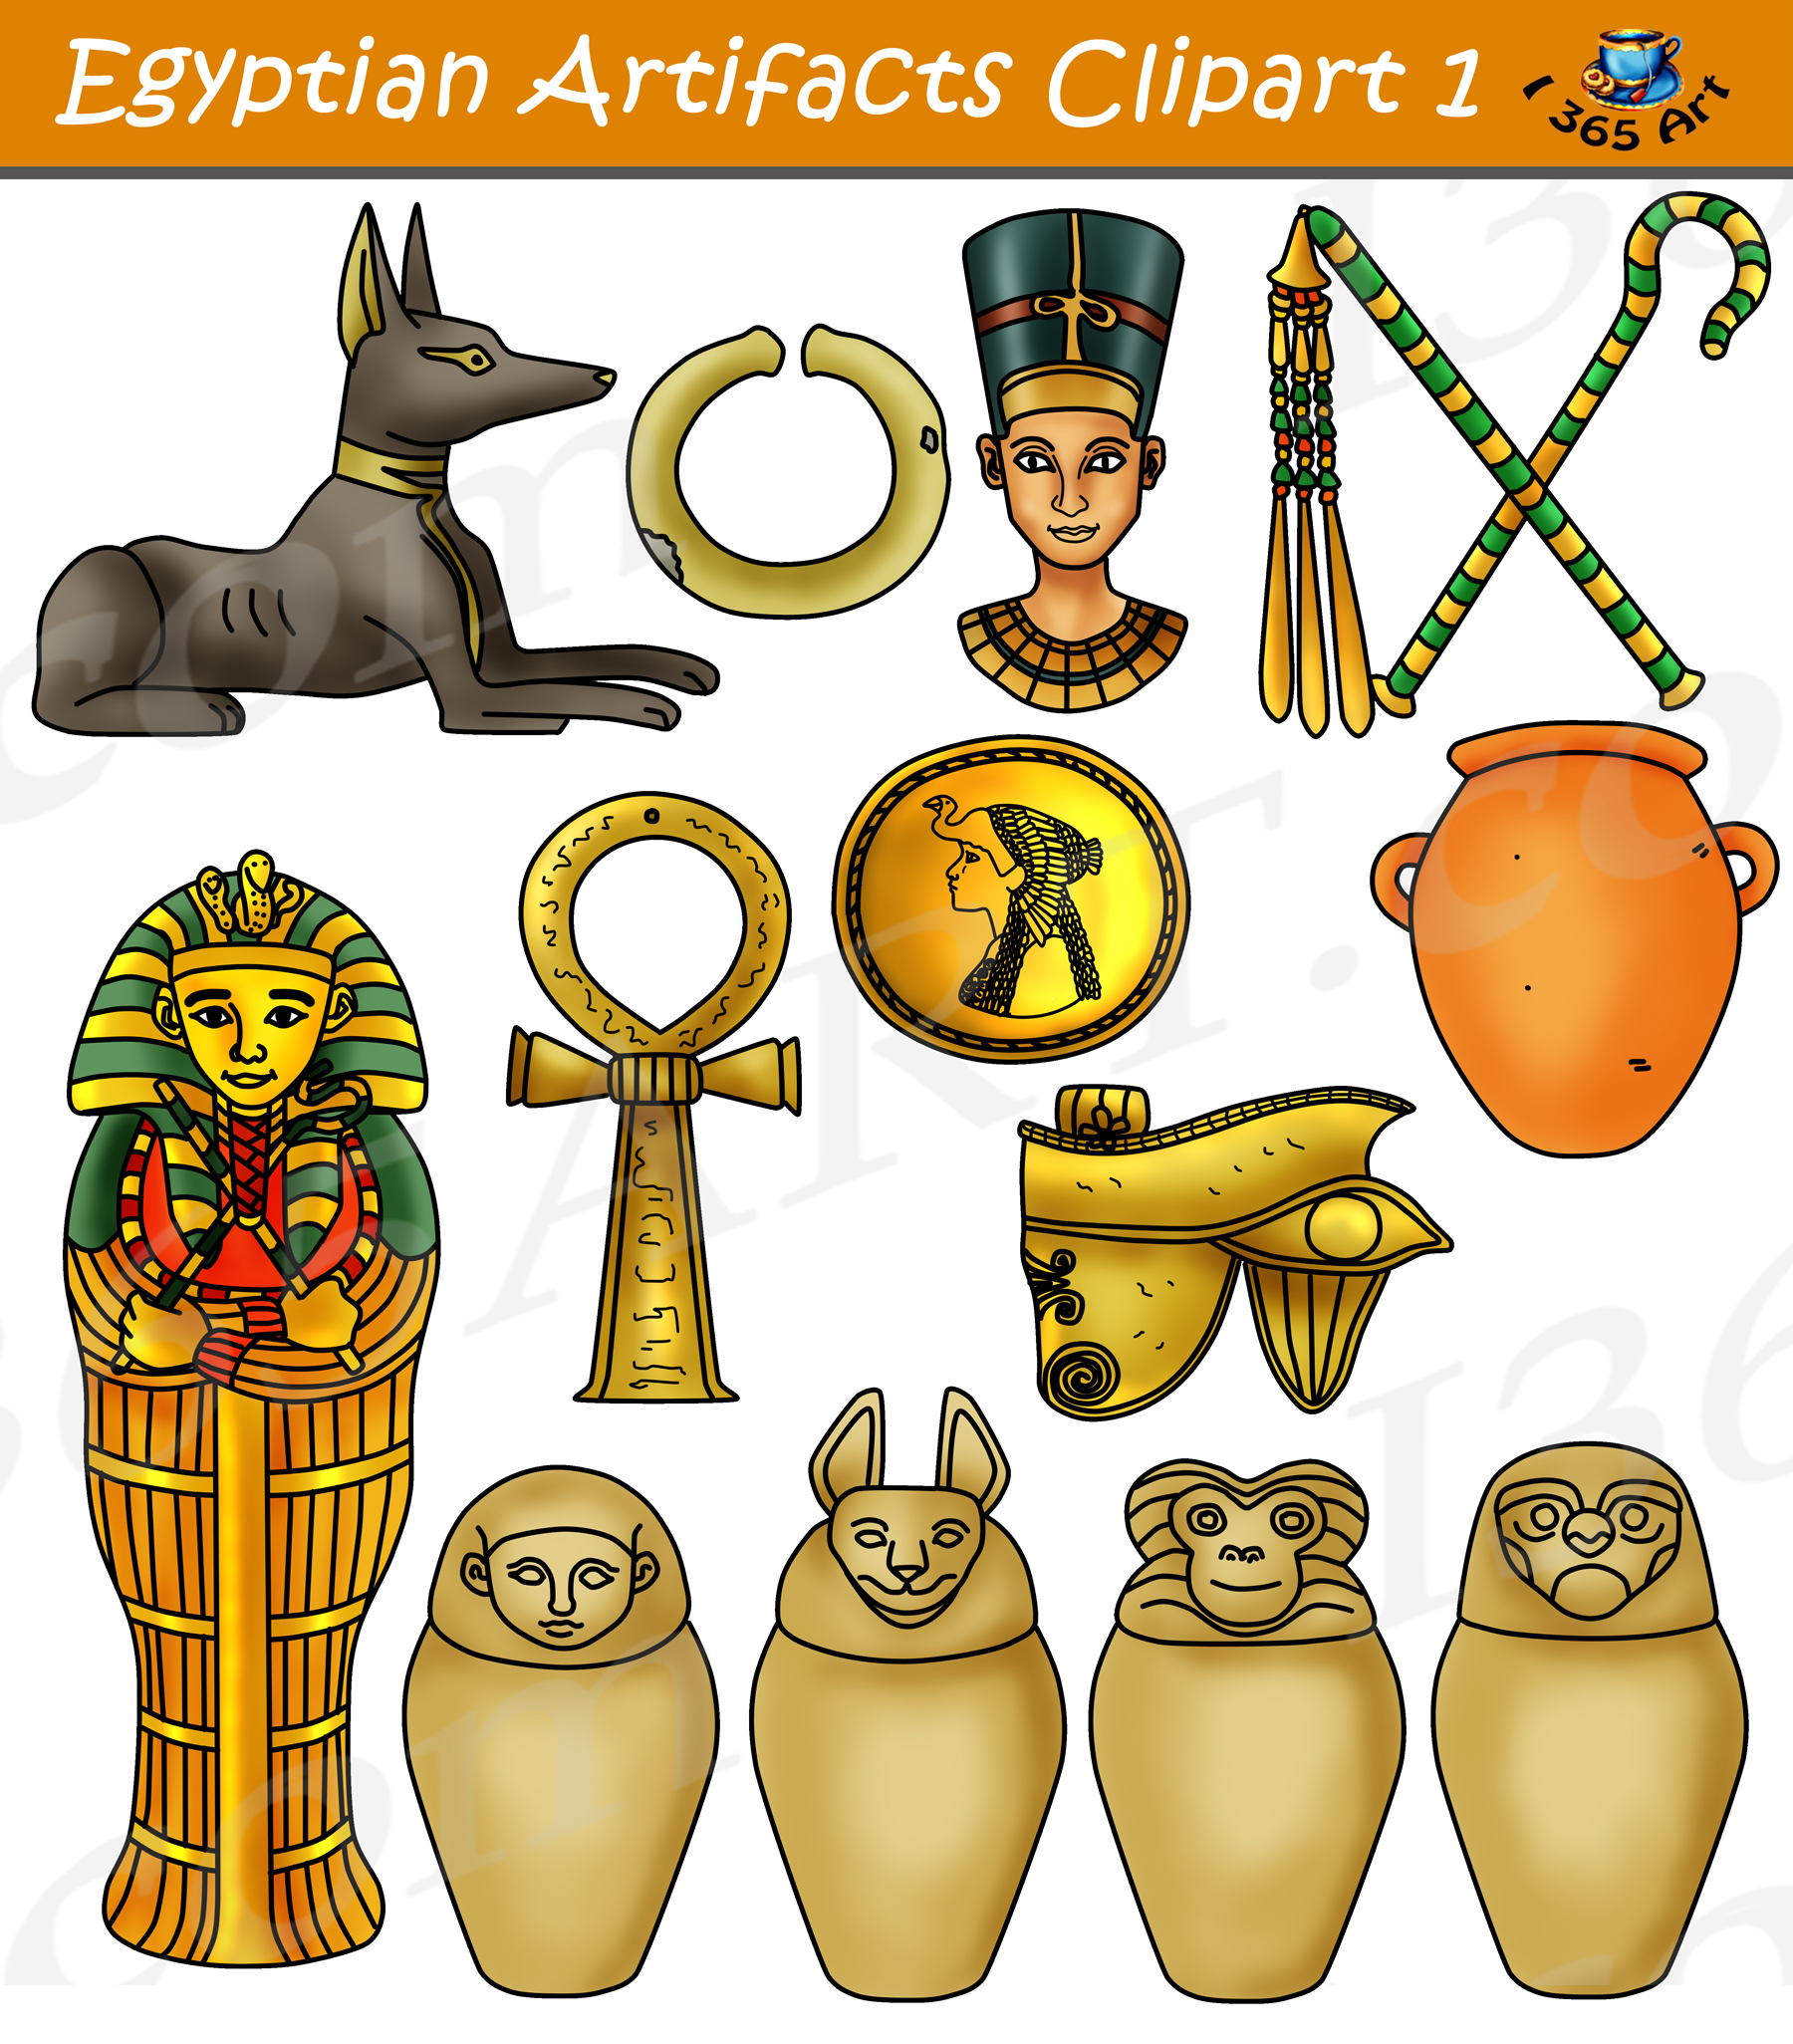 Egyptian Artifacts Clipart Part 1 Digital Download.